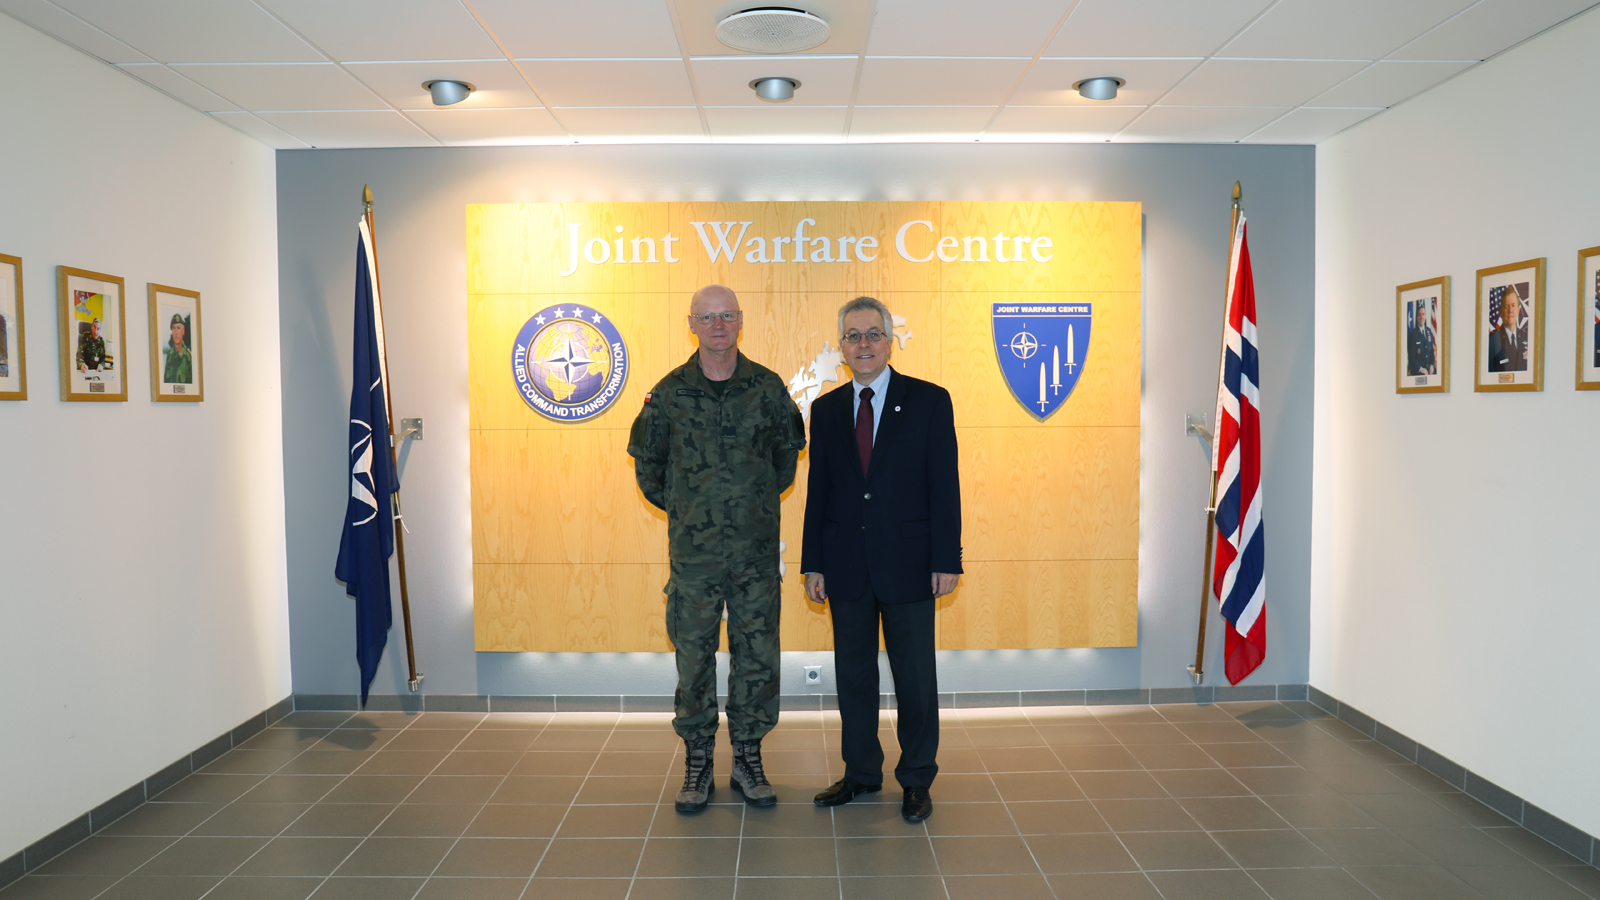 Head of International Committee of the Red Cross Delegation to the EU and NATO visits Joint Warfare Centre